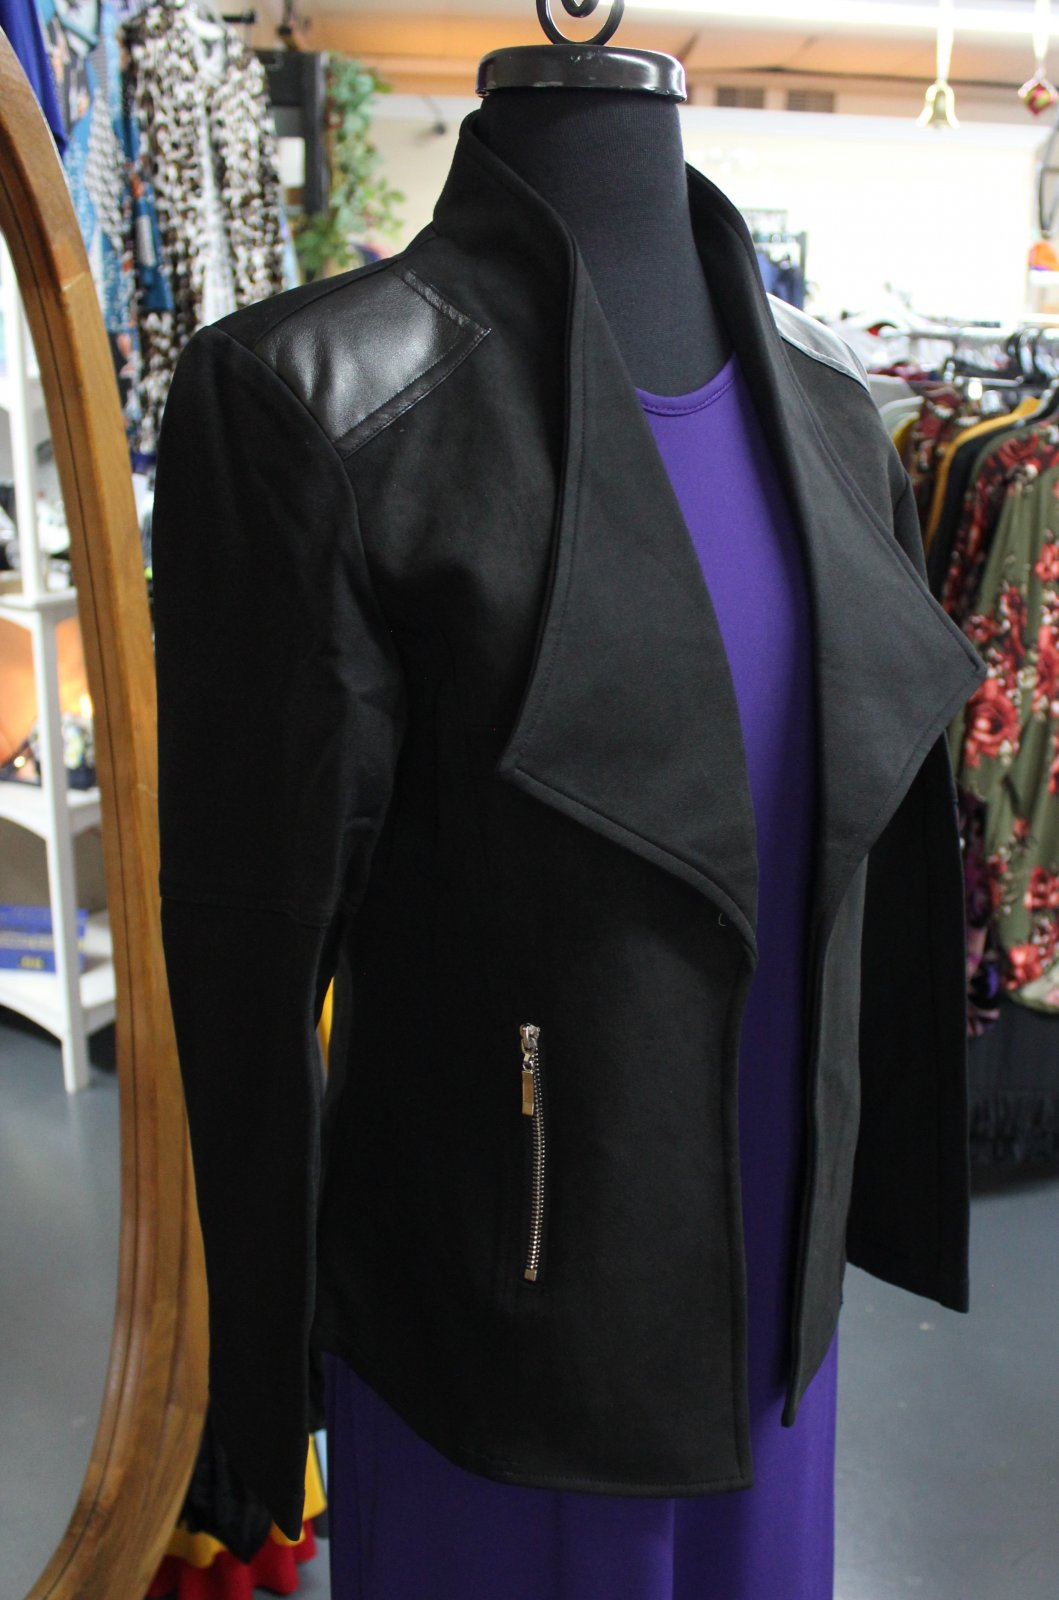 K. Hart Black Blazer w/zippers